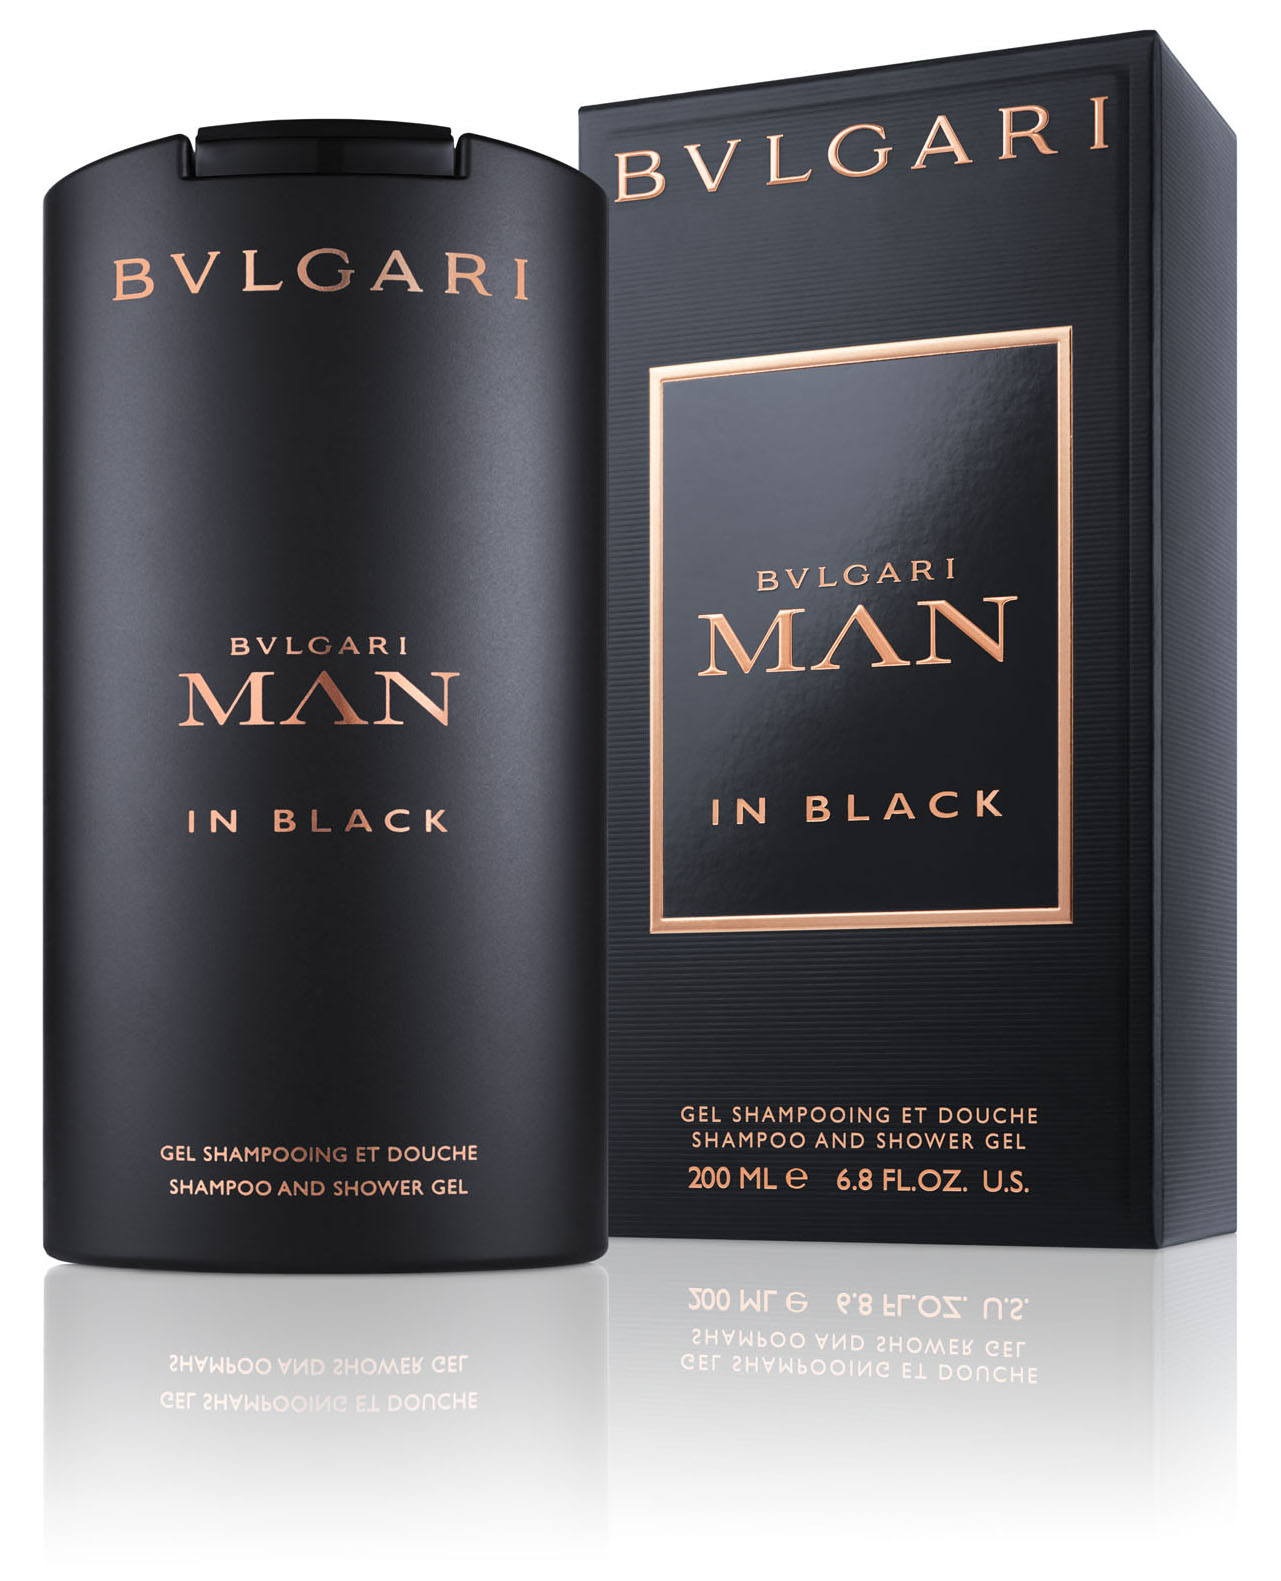 Bvlgari Black Man In Black Shampoo & Showergel 200 ml